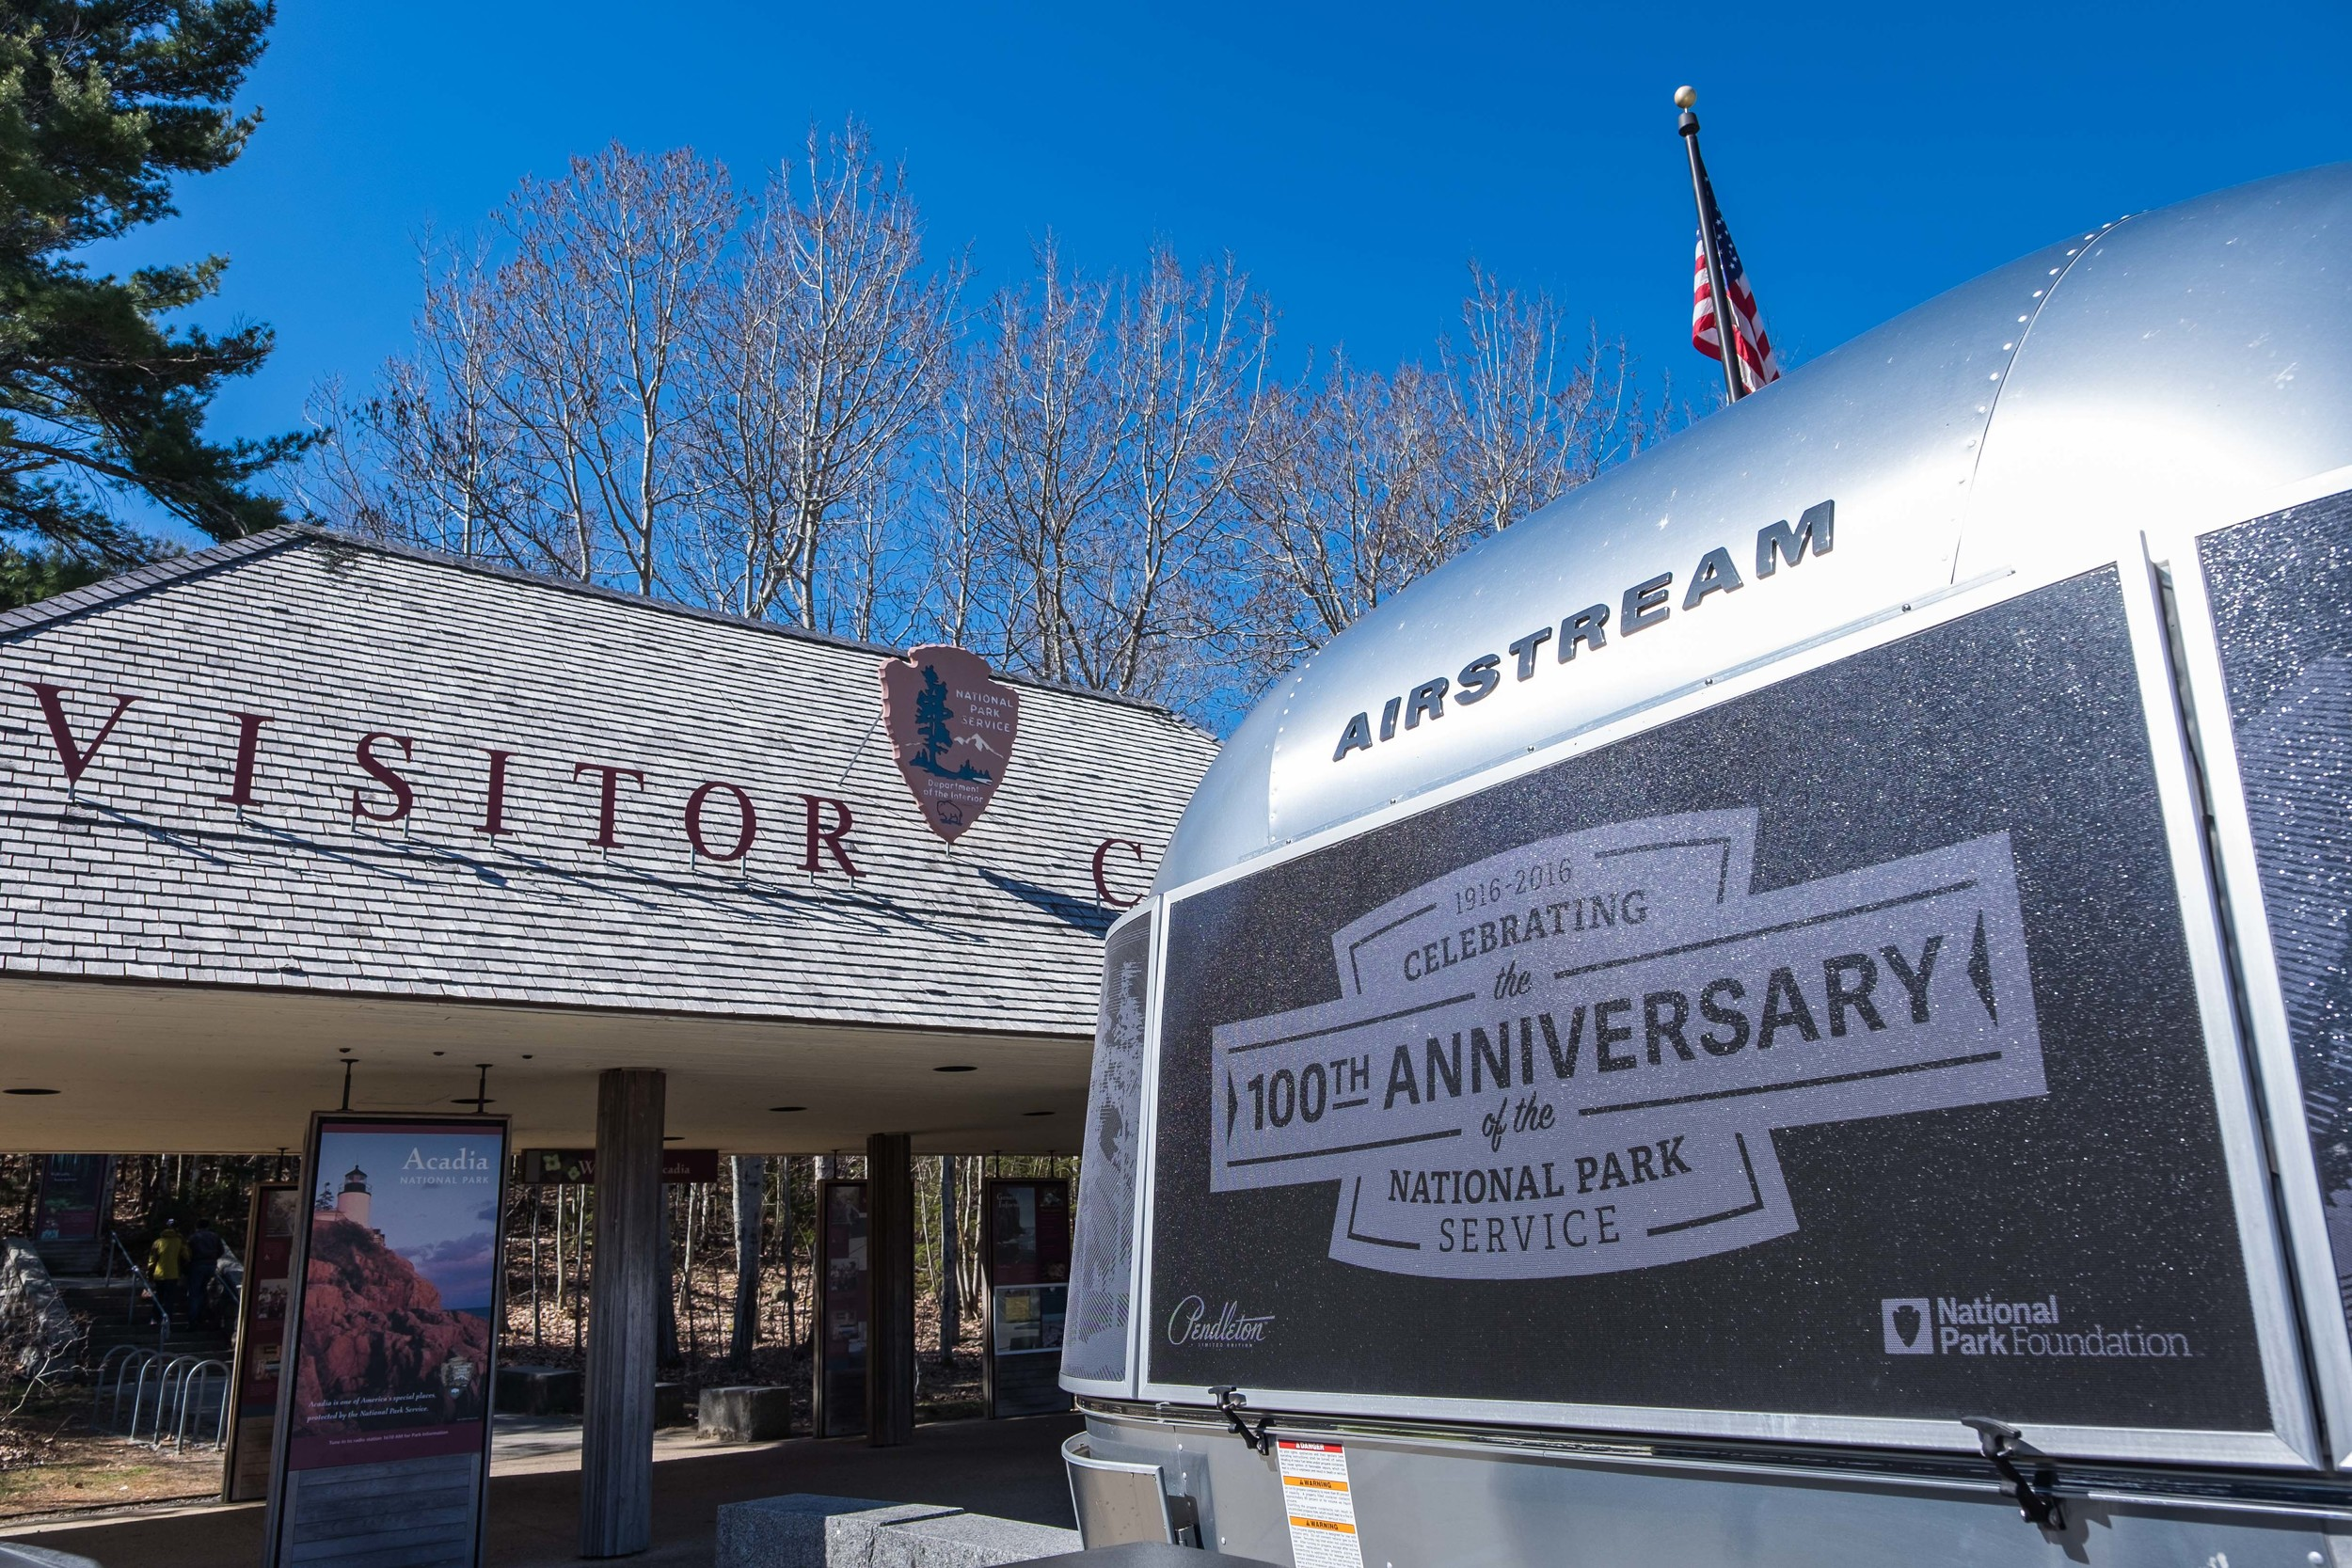 The Pendleton Limited Edition National Parks Airstream makes an important stop at the Acadia National Park Visitor Center in Maine.